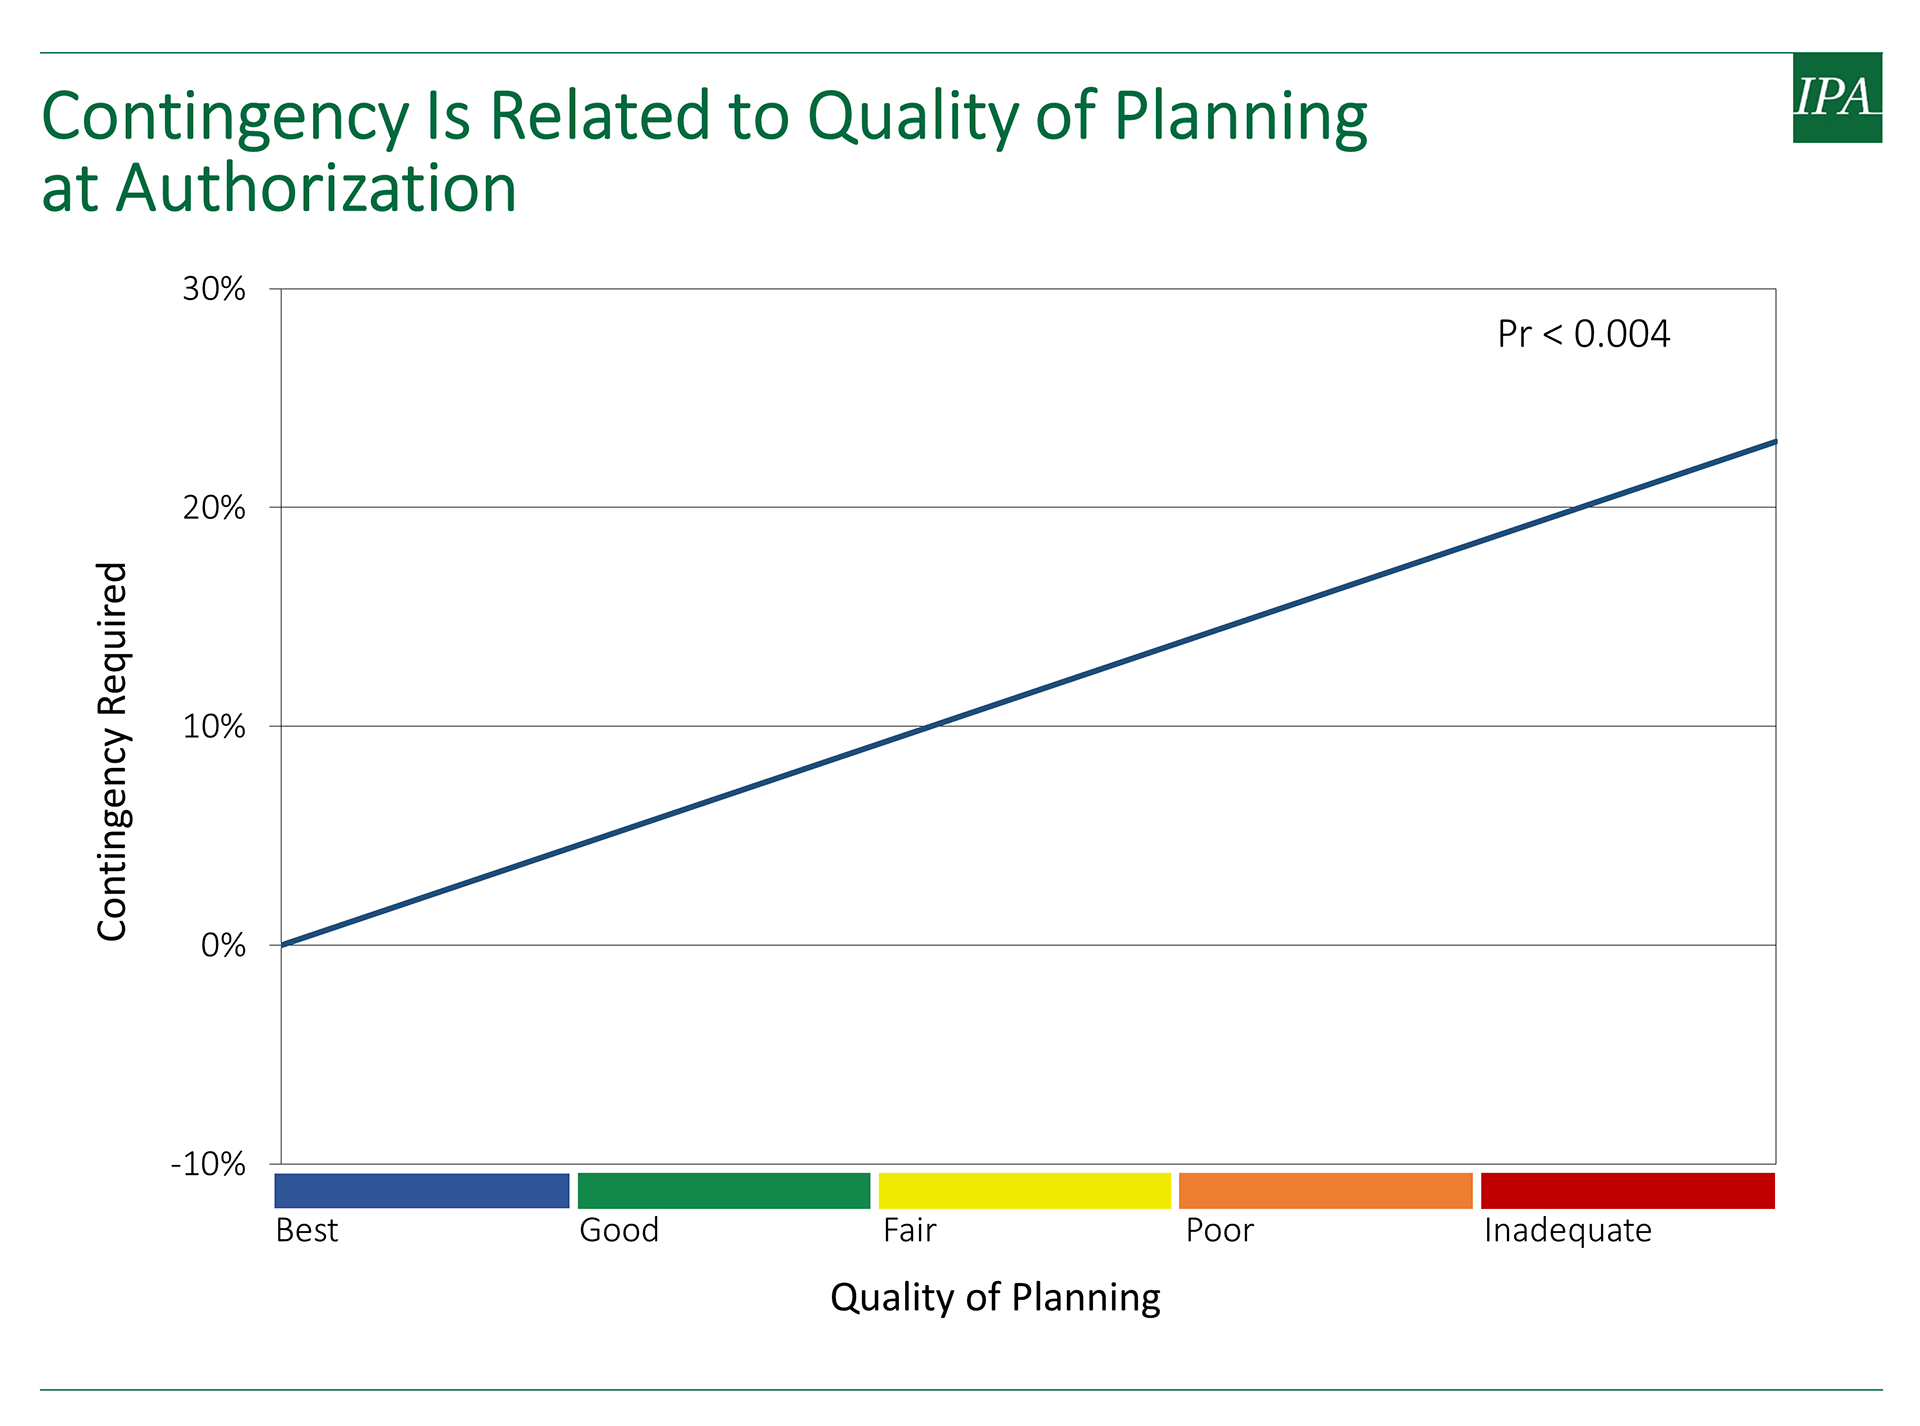 Graph showing how contingency is related to the quality of planning at project authorization